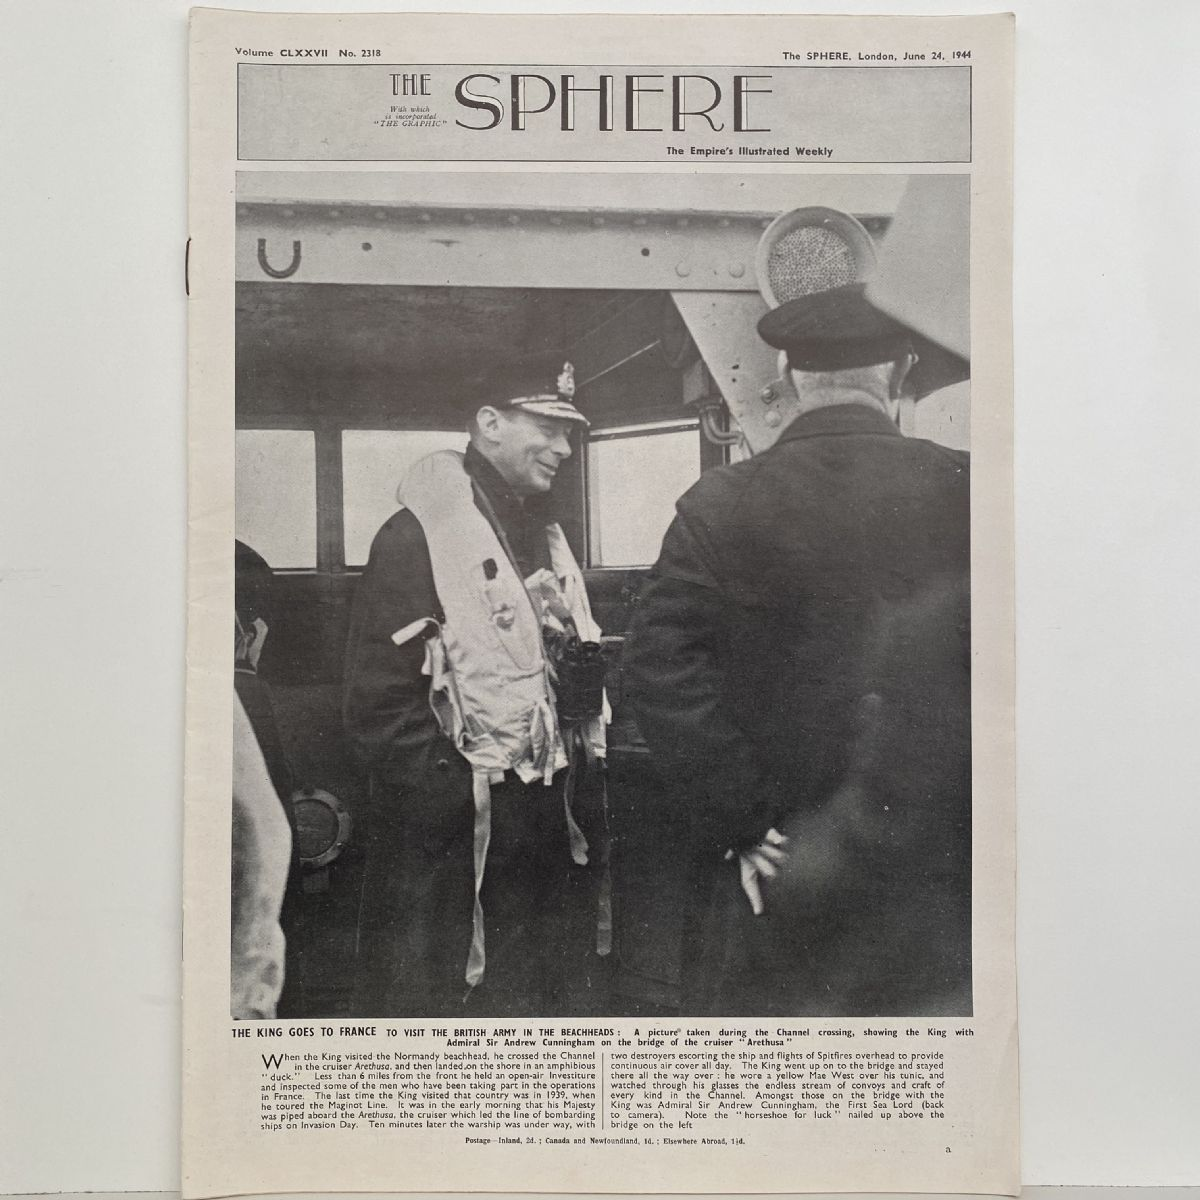 THE SPHERE The Empire's Illustrated Weekly. June 24,1944. No. 2318